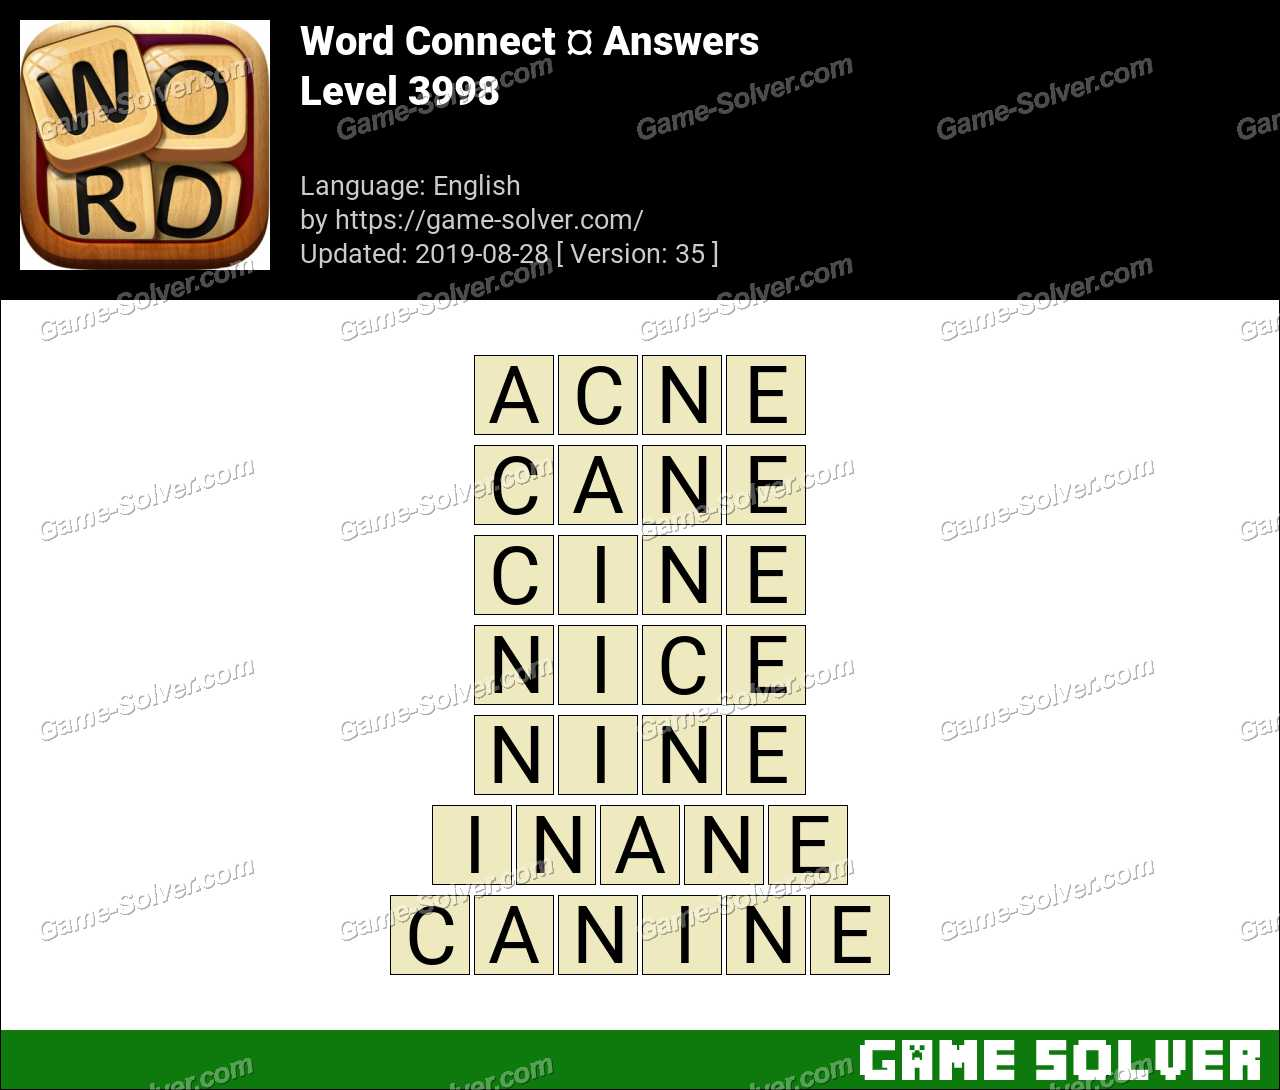 Word Connect Level 3998 Answers